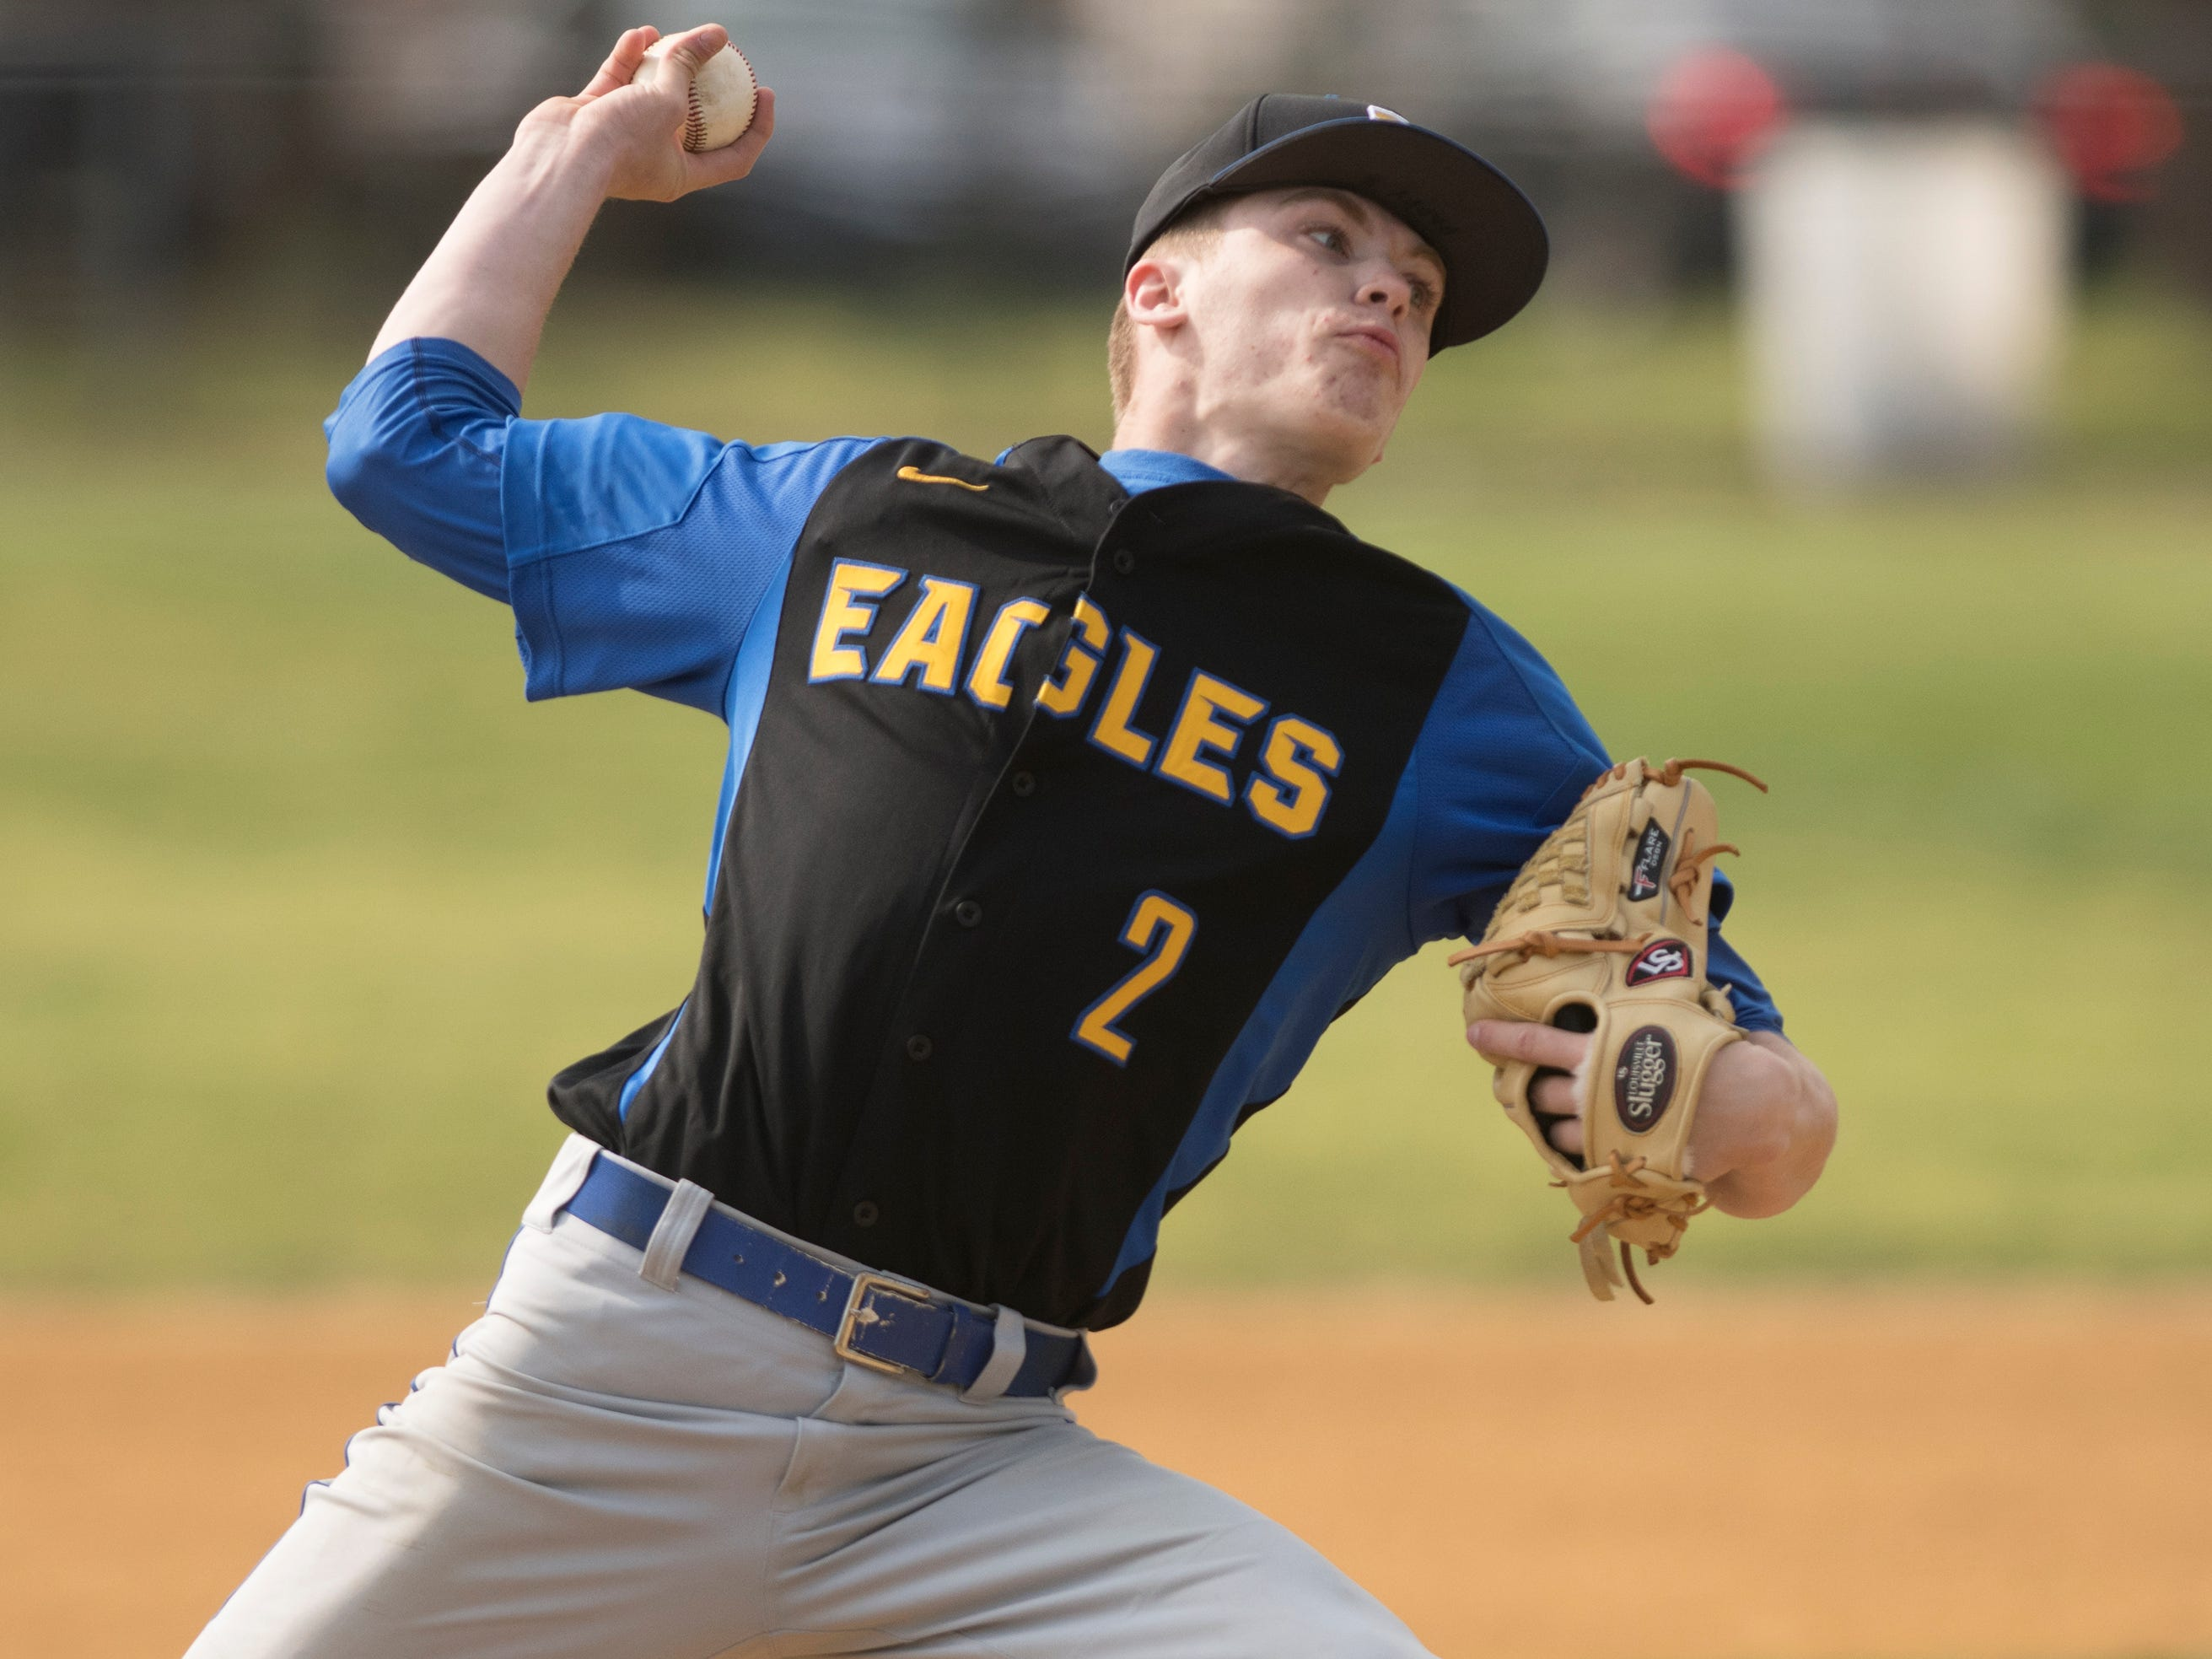 Pennsville's Patrick Montagna delivers a pitch during the first inning of the baseball game between Pennsville and Gloucester Catholic, played at Joe Barth Field in Brooklawn on Wednesday, April 17, 2019.   Gloucester Catholic defeated Pennsville, 13-0.